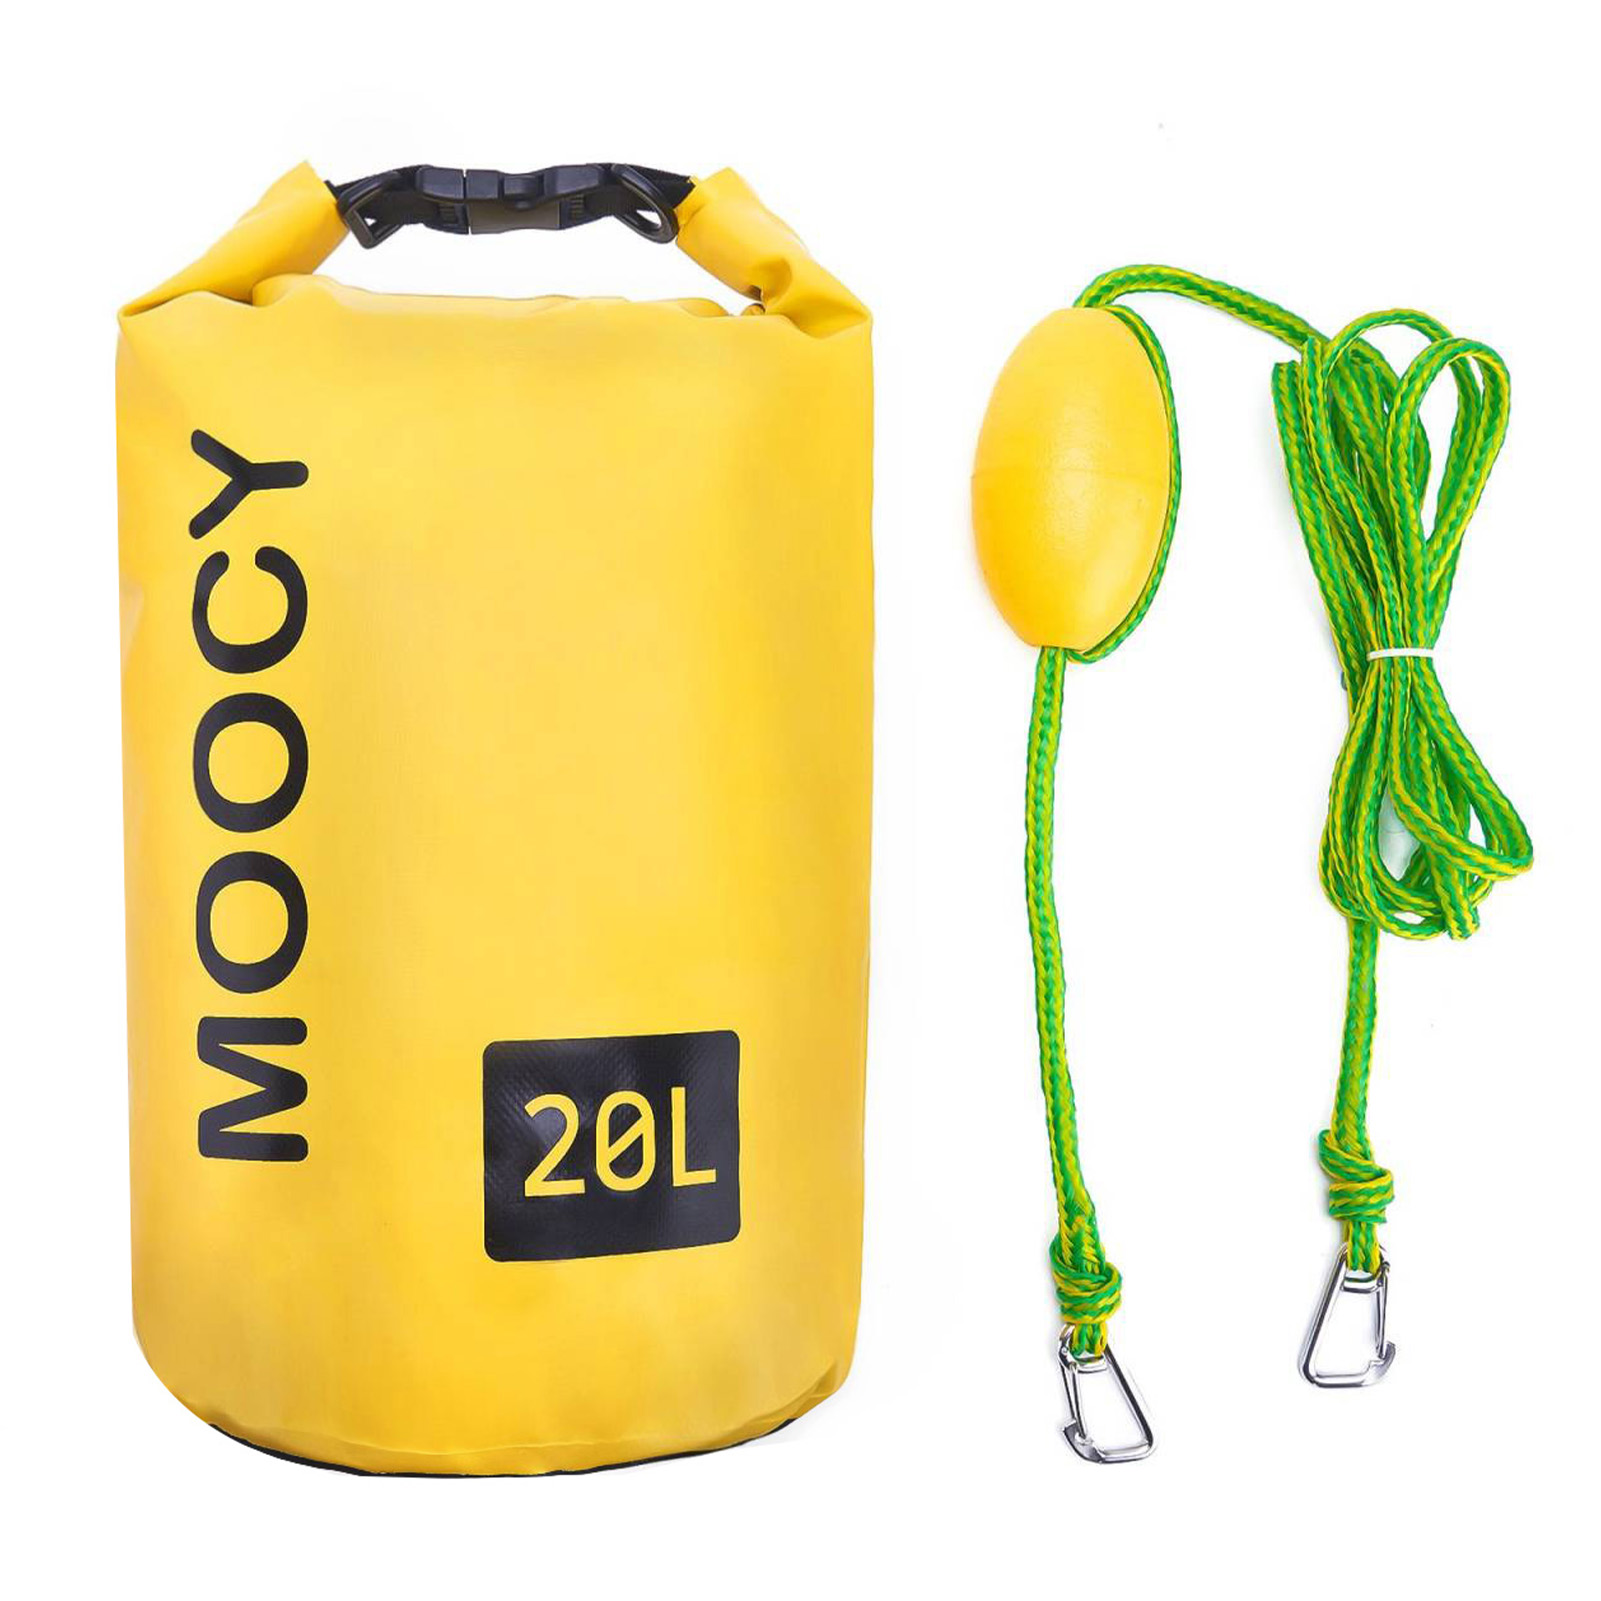 10L 20L Tow Rope Sand Sack 2-in-1 Sand Anchor & Waterproof Dry Bag Storage Bags Dock Line For Kayak Jet Ski Rowing Small Boats